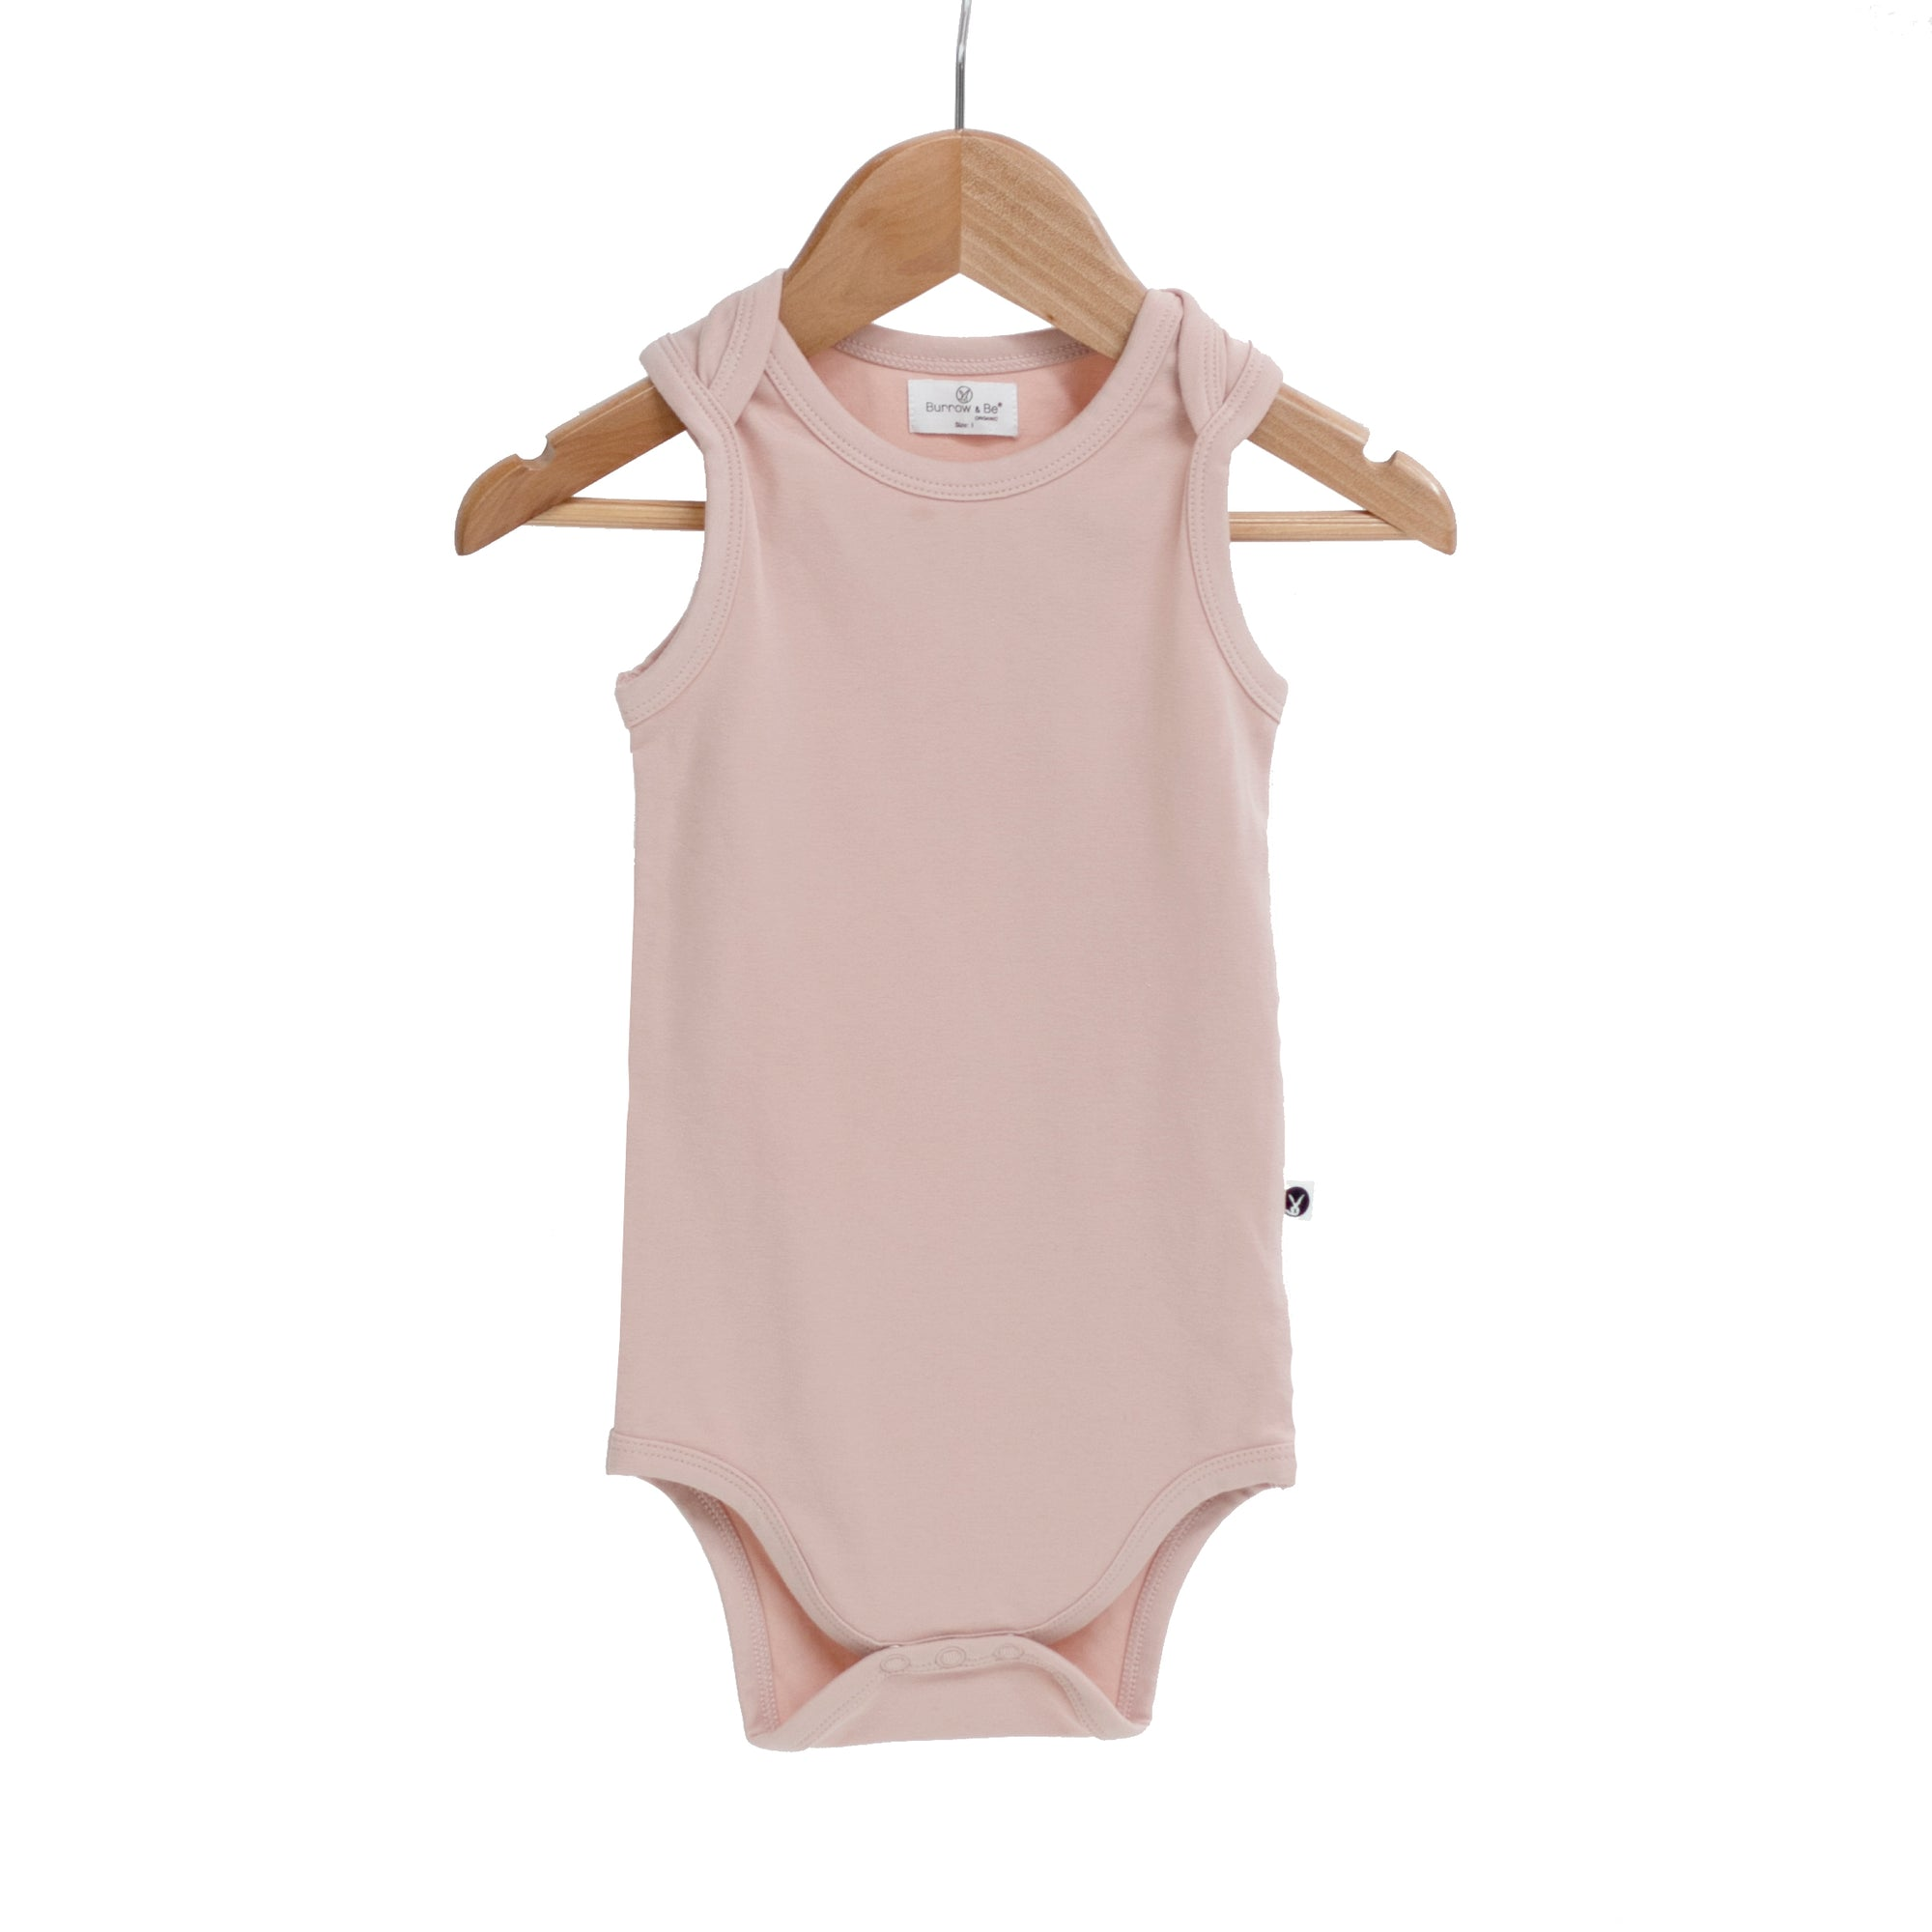 Burrow & Be Dusty Rose Singlet Onesie